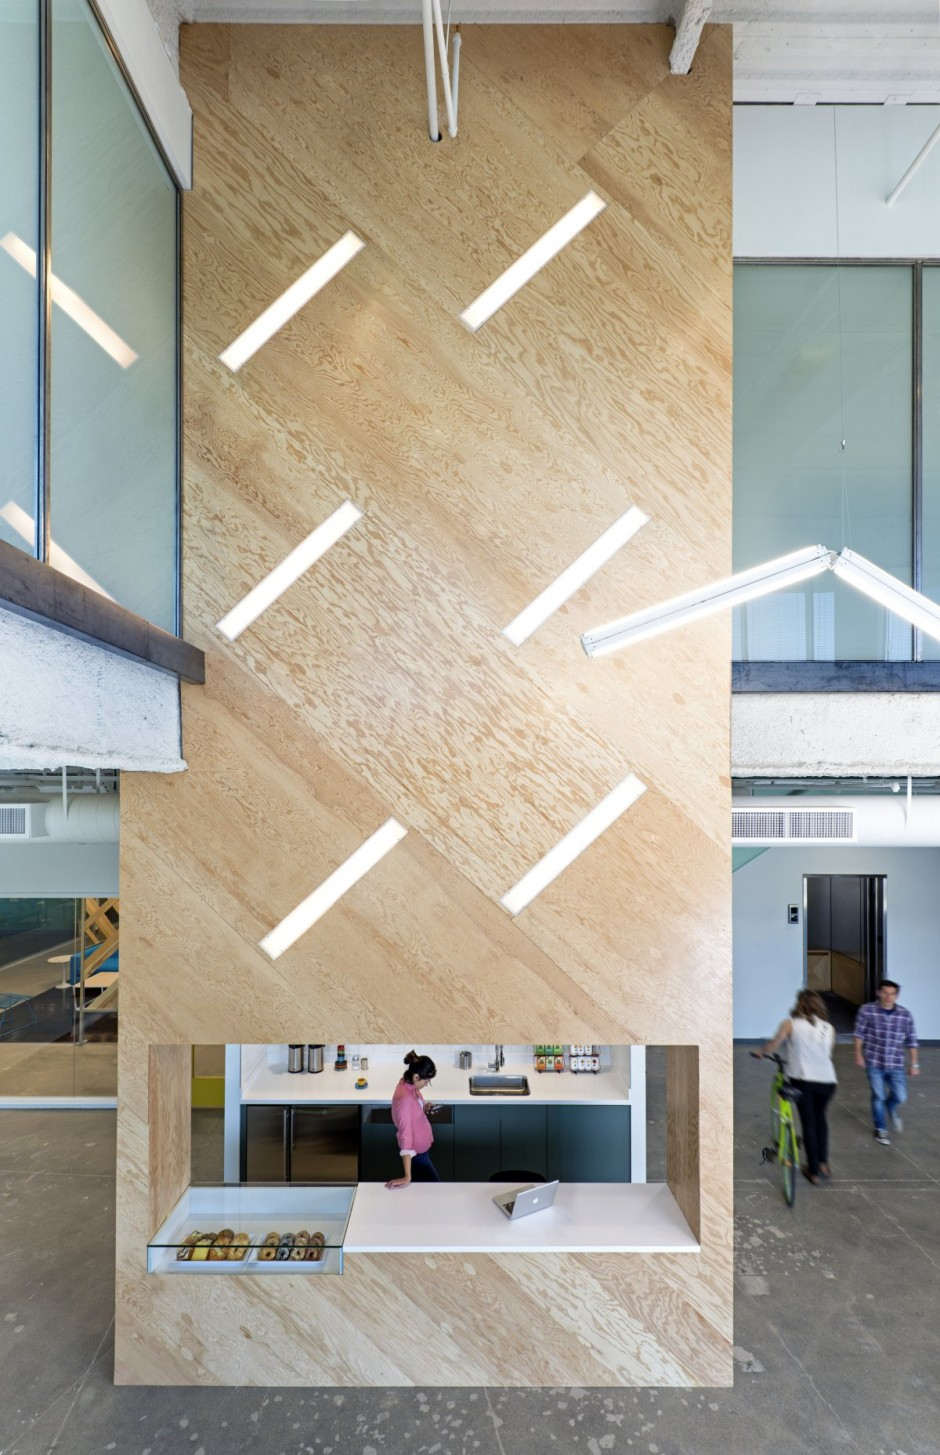 Wooden Wall Detail - Evernote office interiors